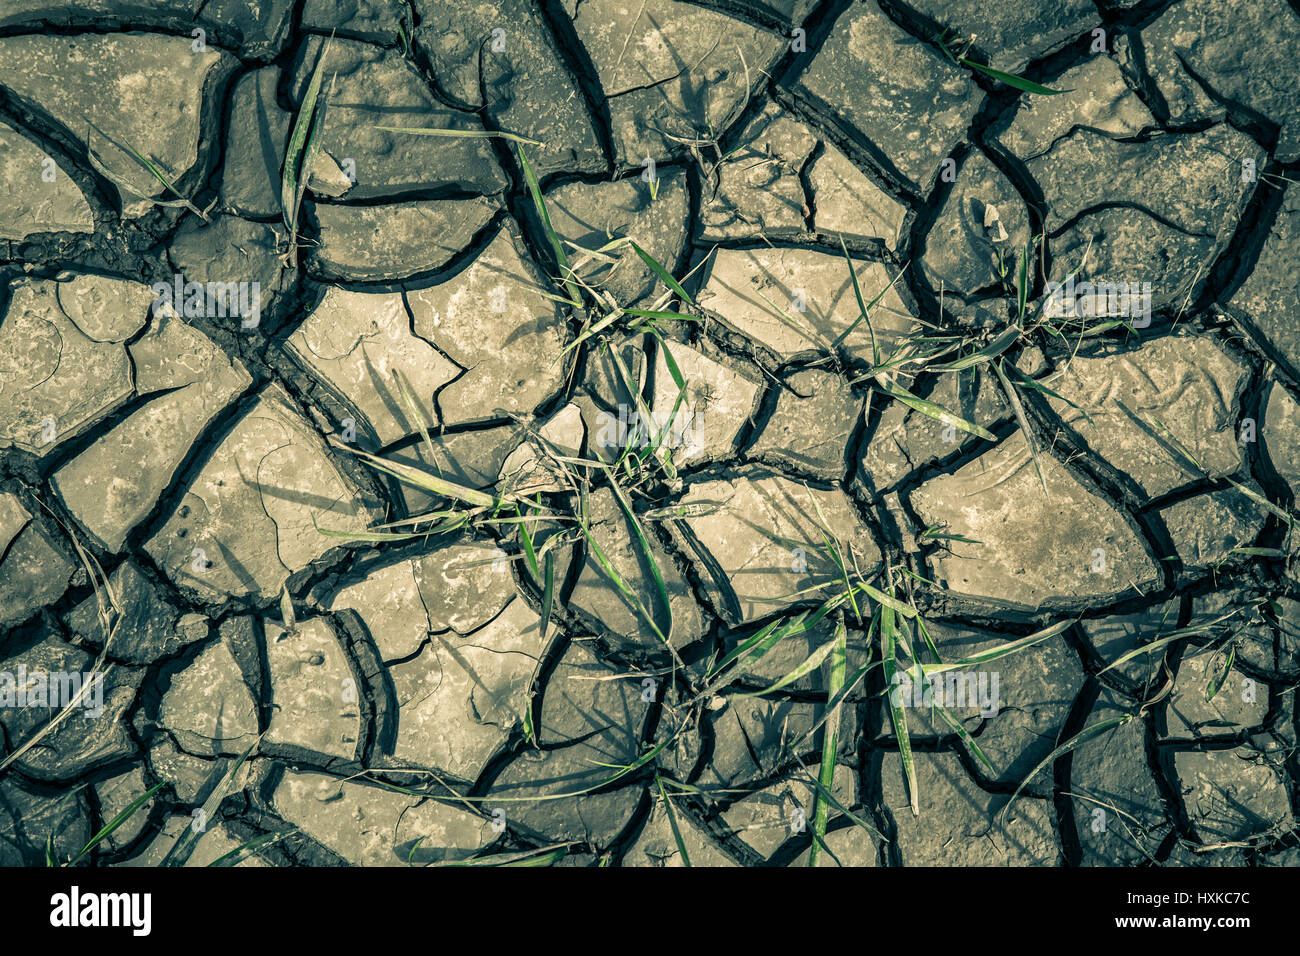 Cracked mud and grass. - Stock Image